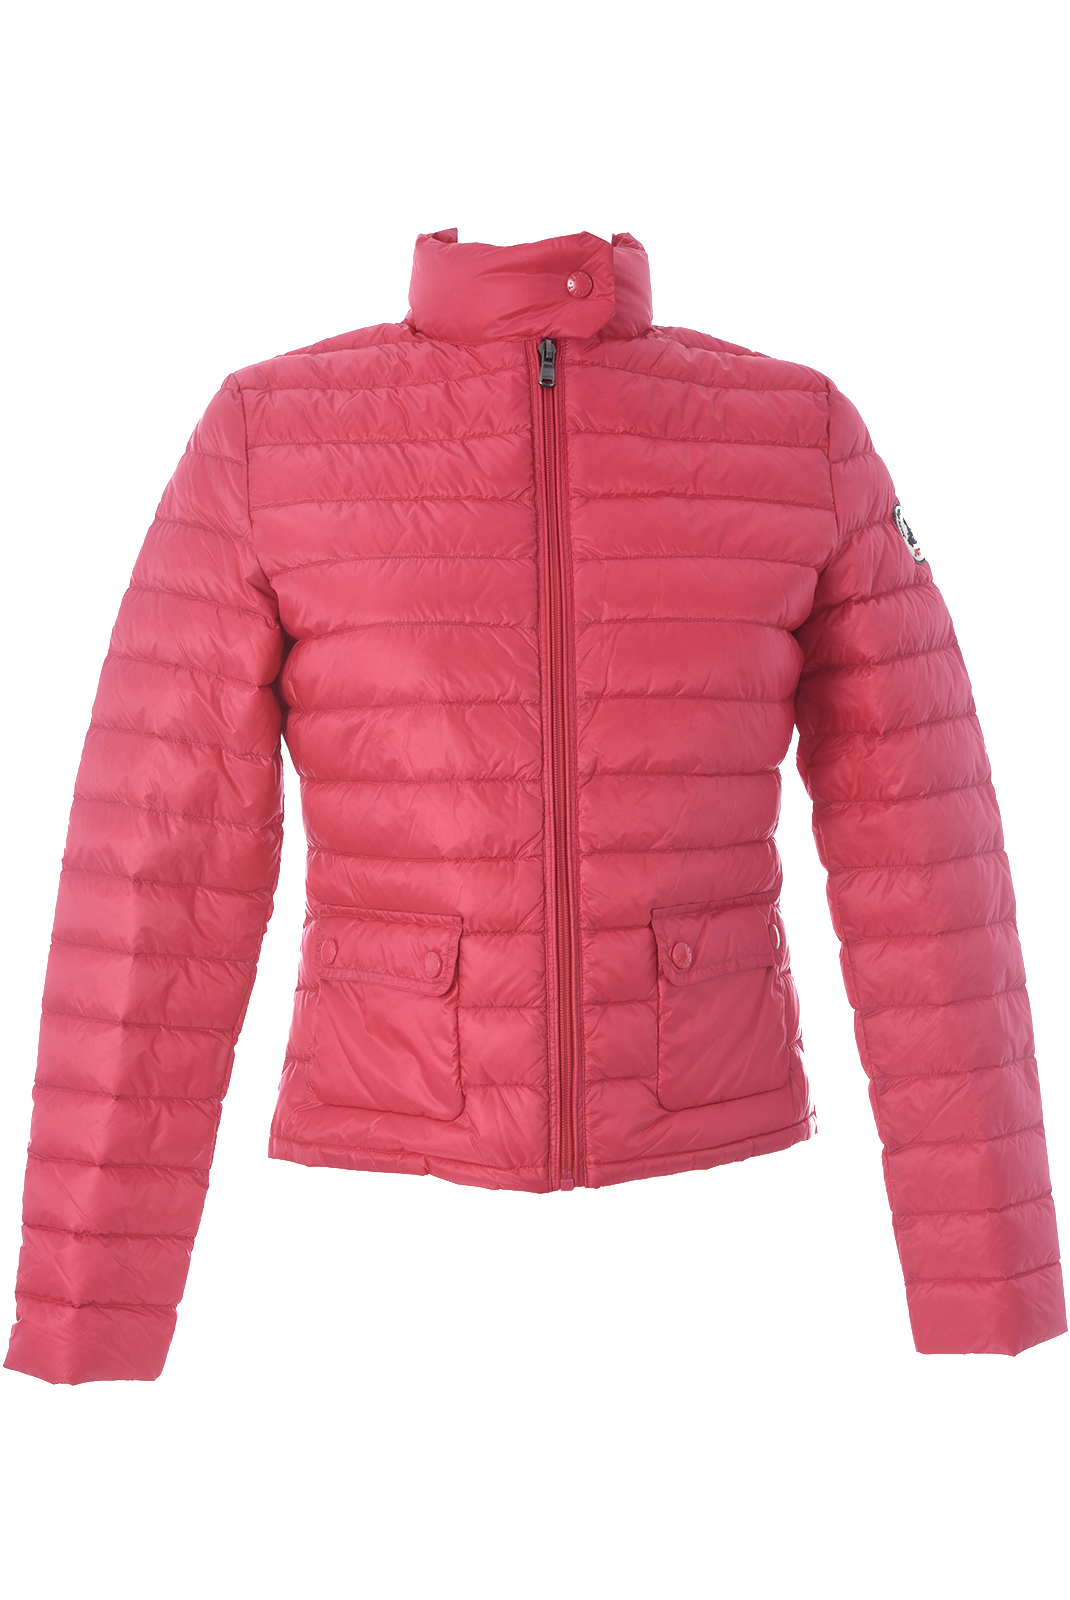 Blouson  Just over the top SONIA 408 FUSCHIA